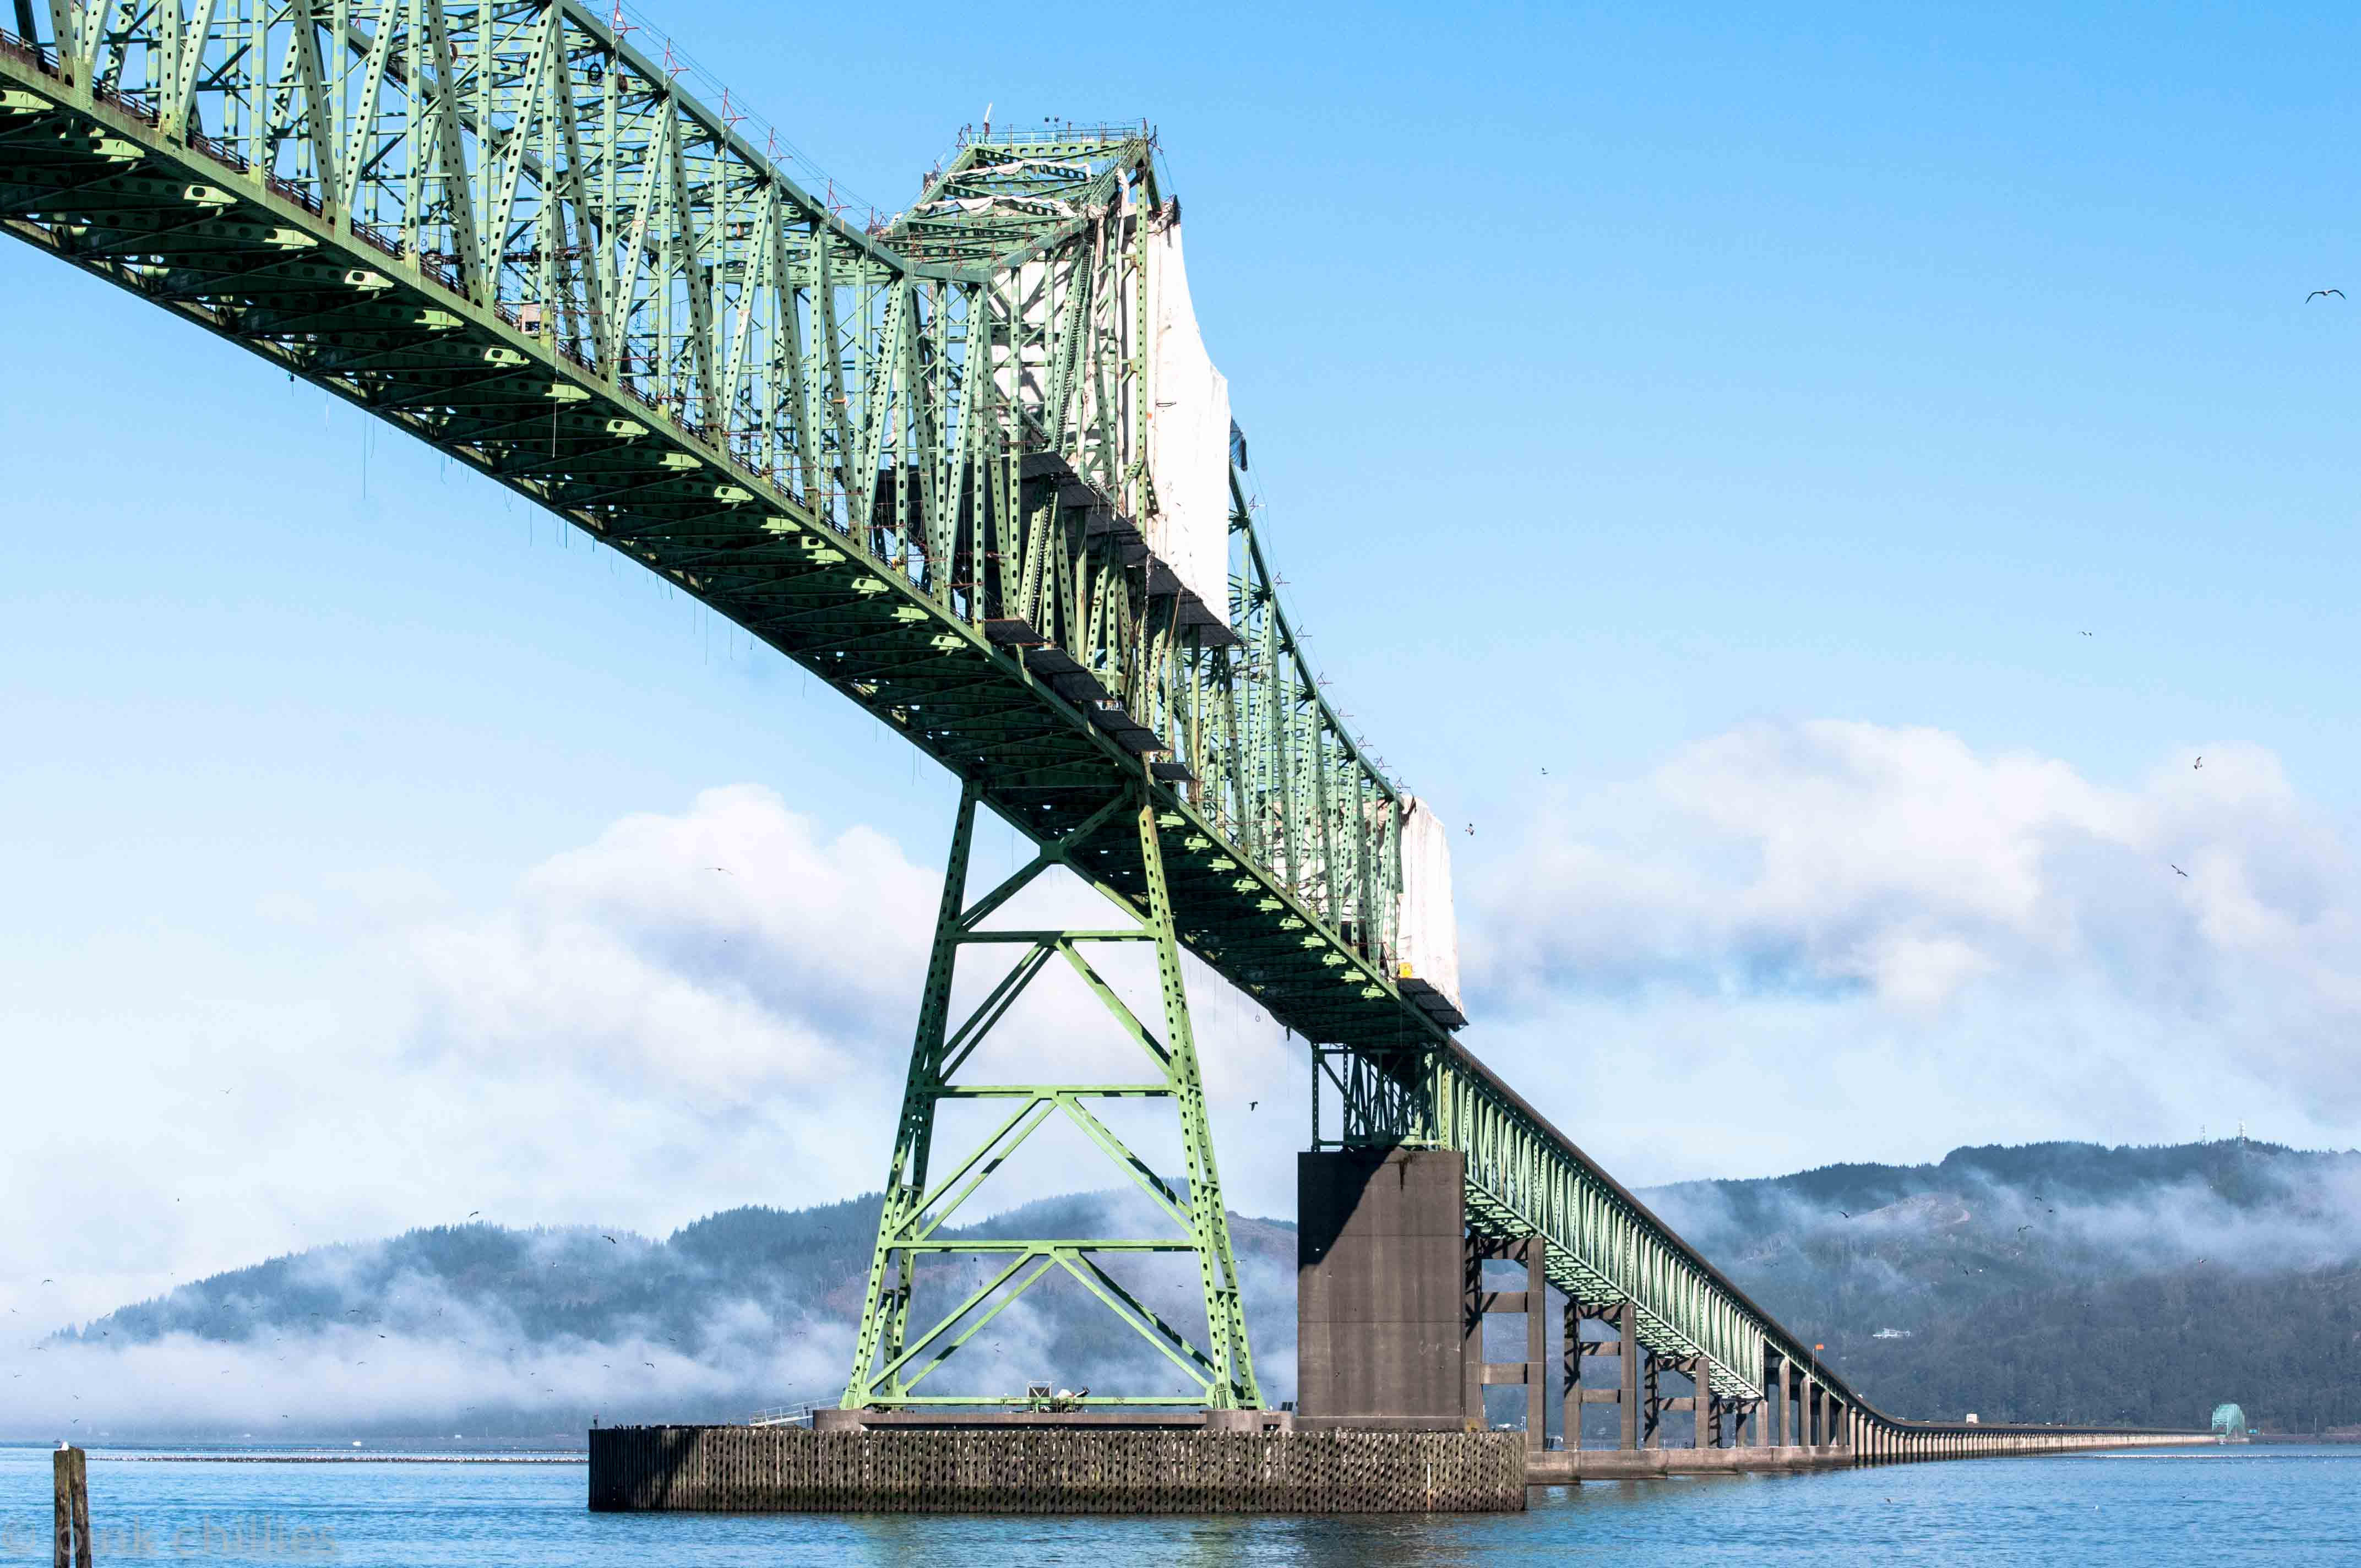 Astoria-Megler-Bridge, Oregon